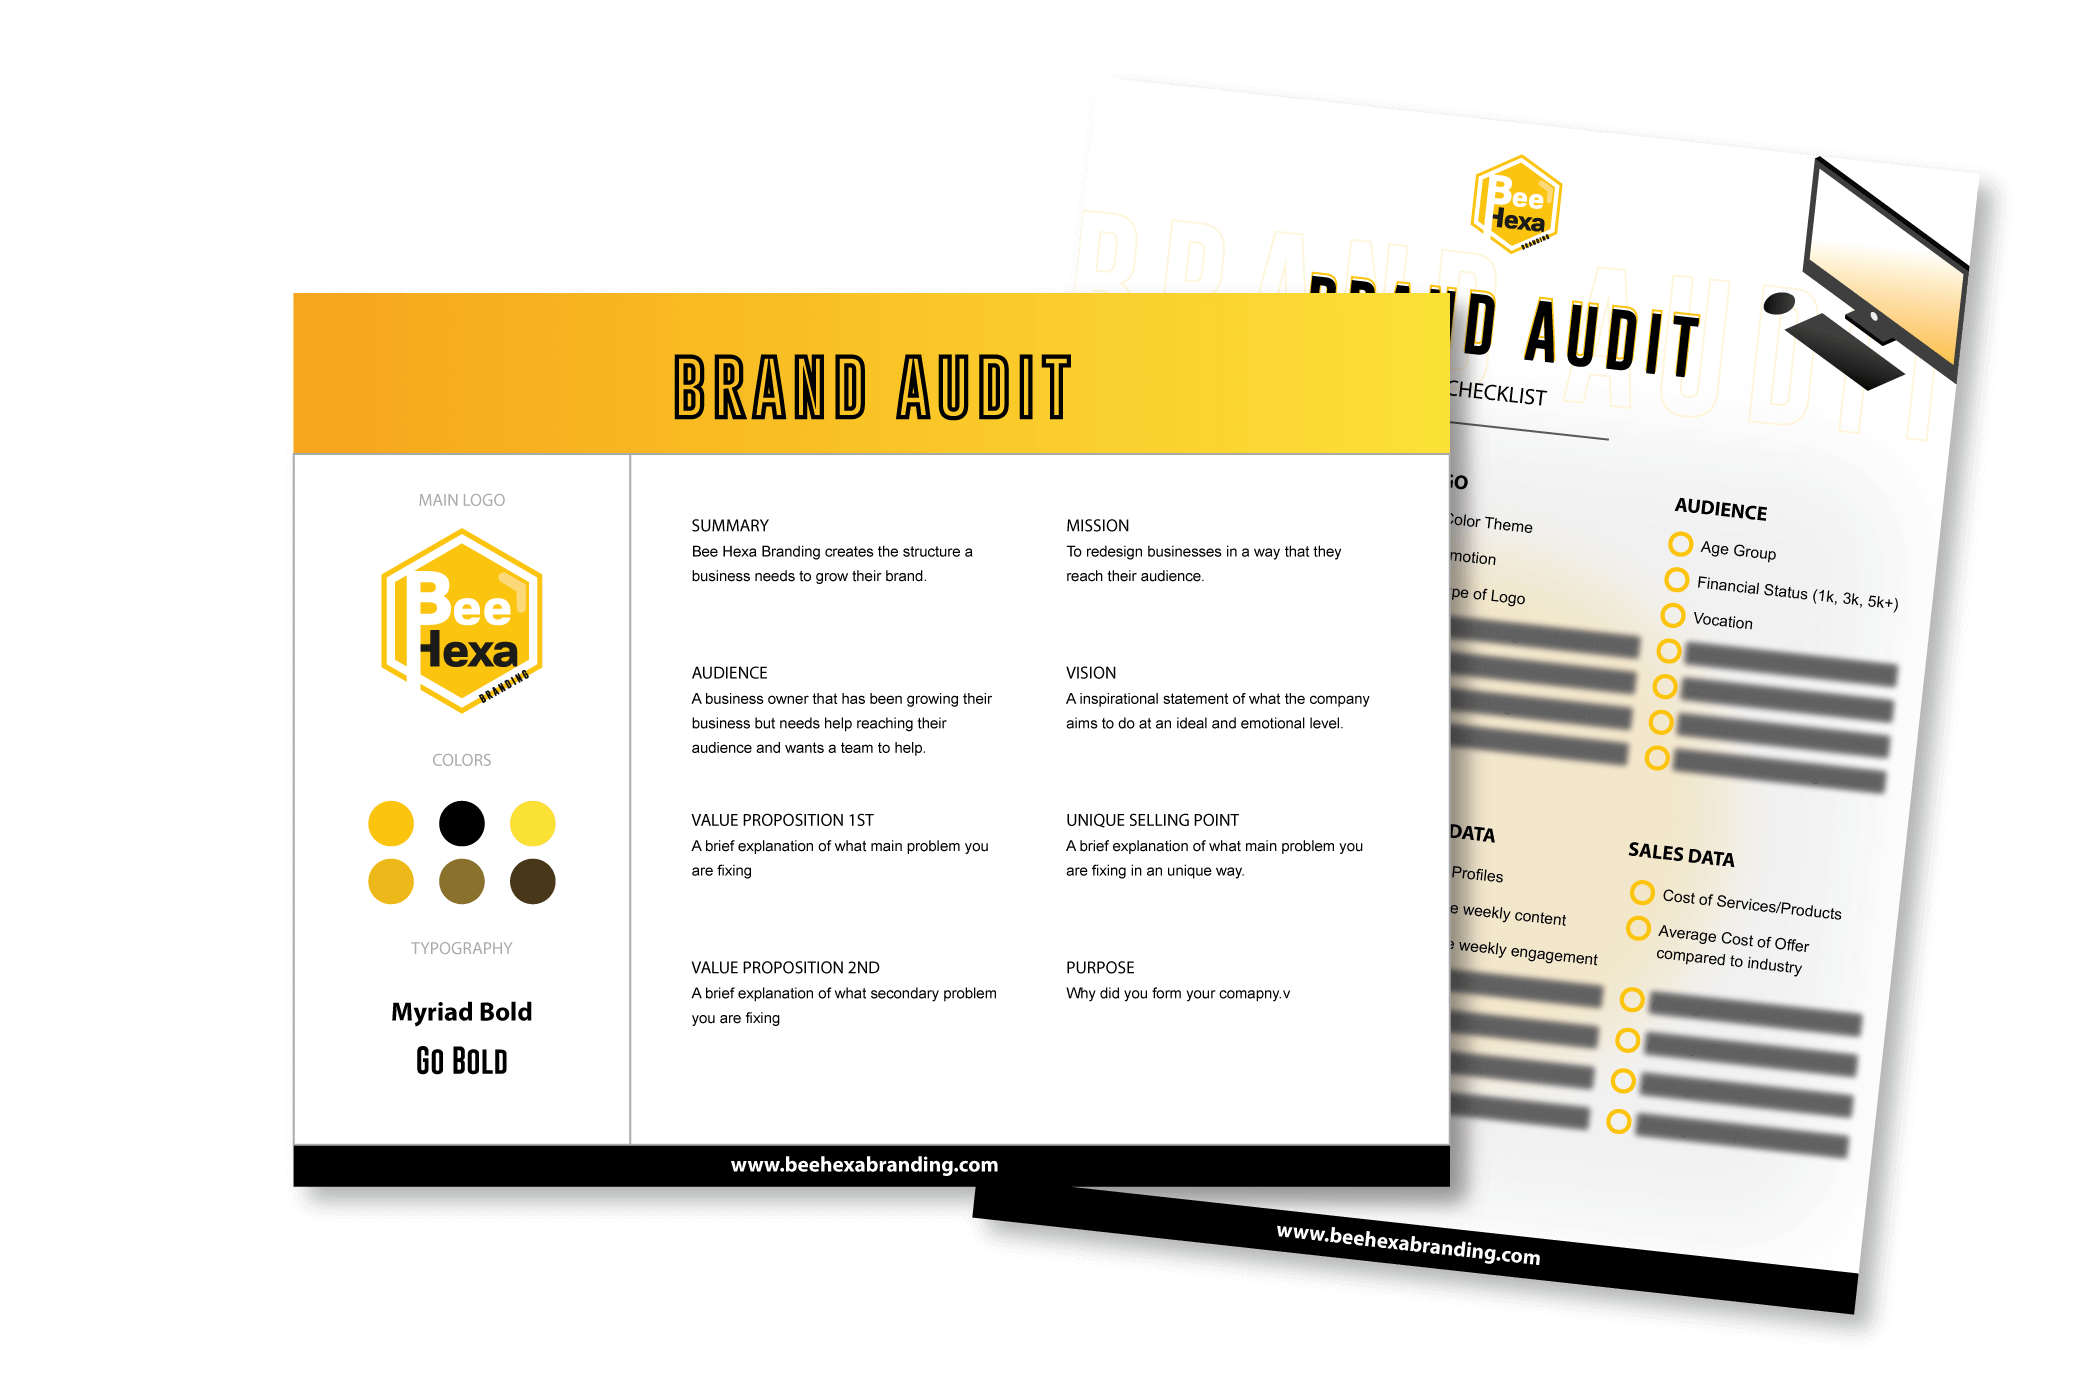 Brand audit sheet showing logo, color and a checklist